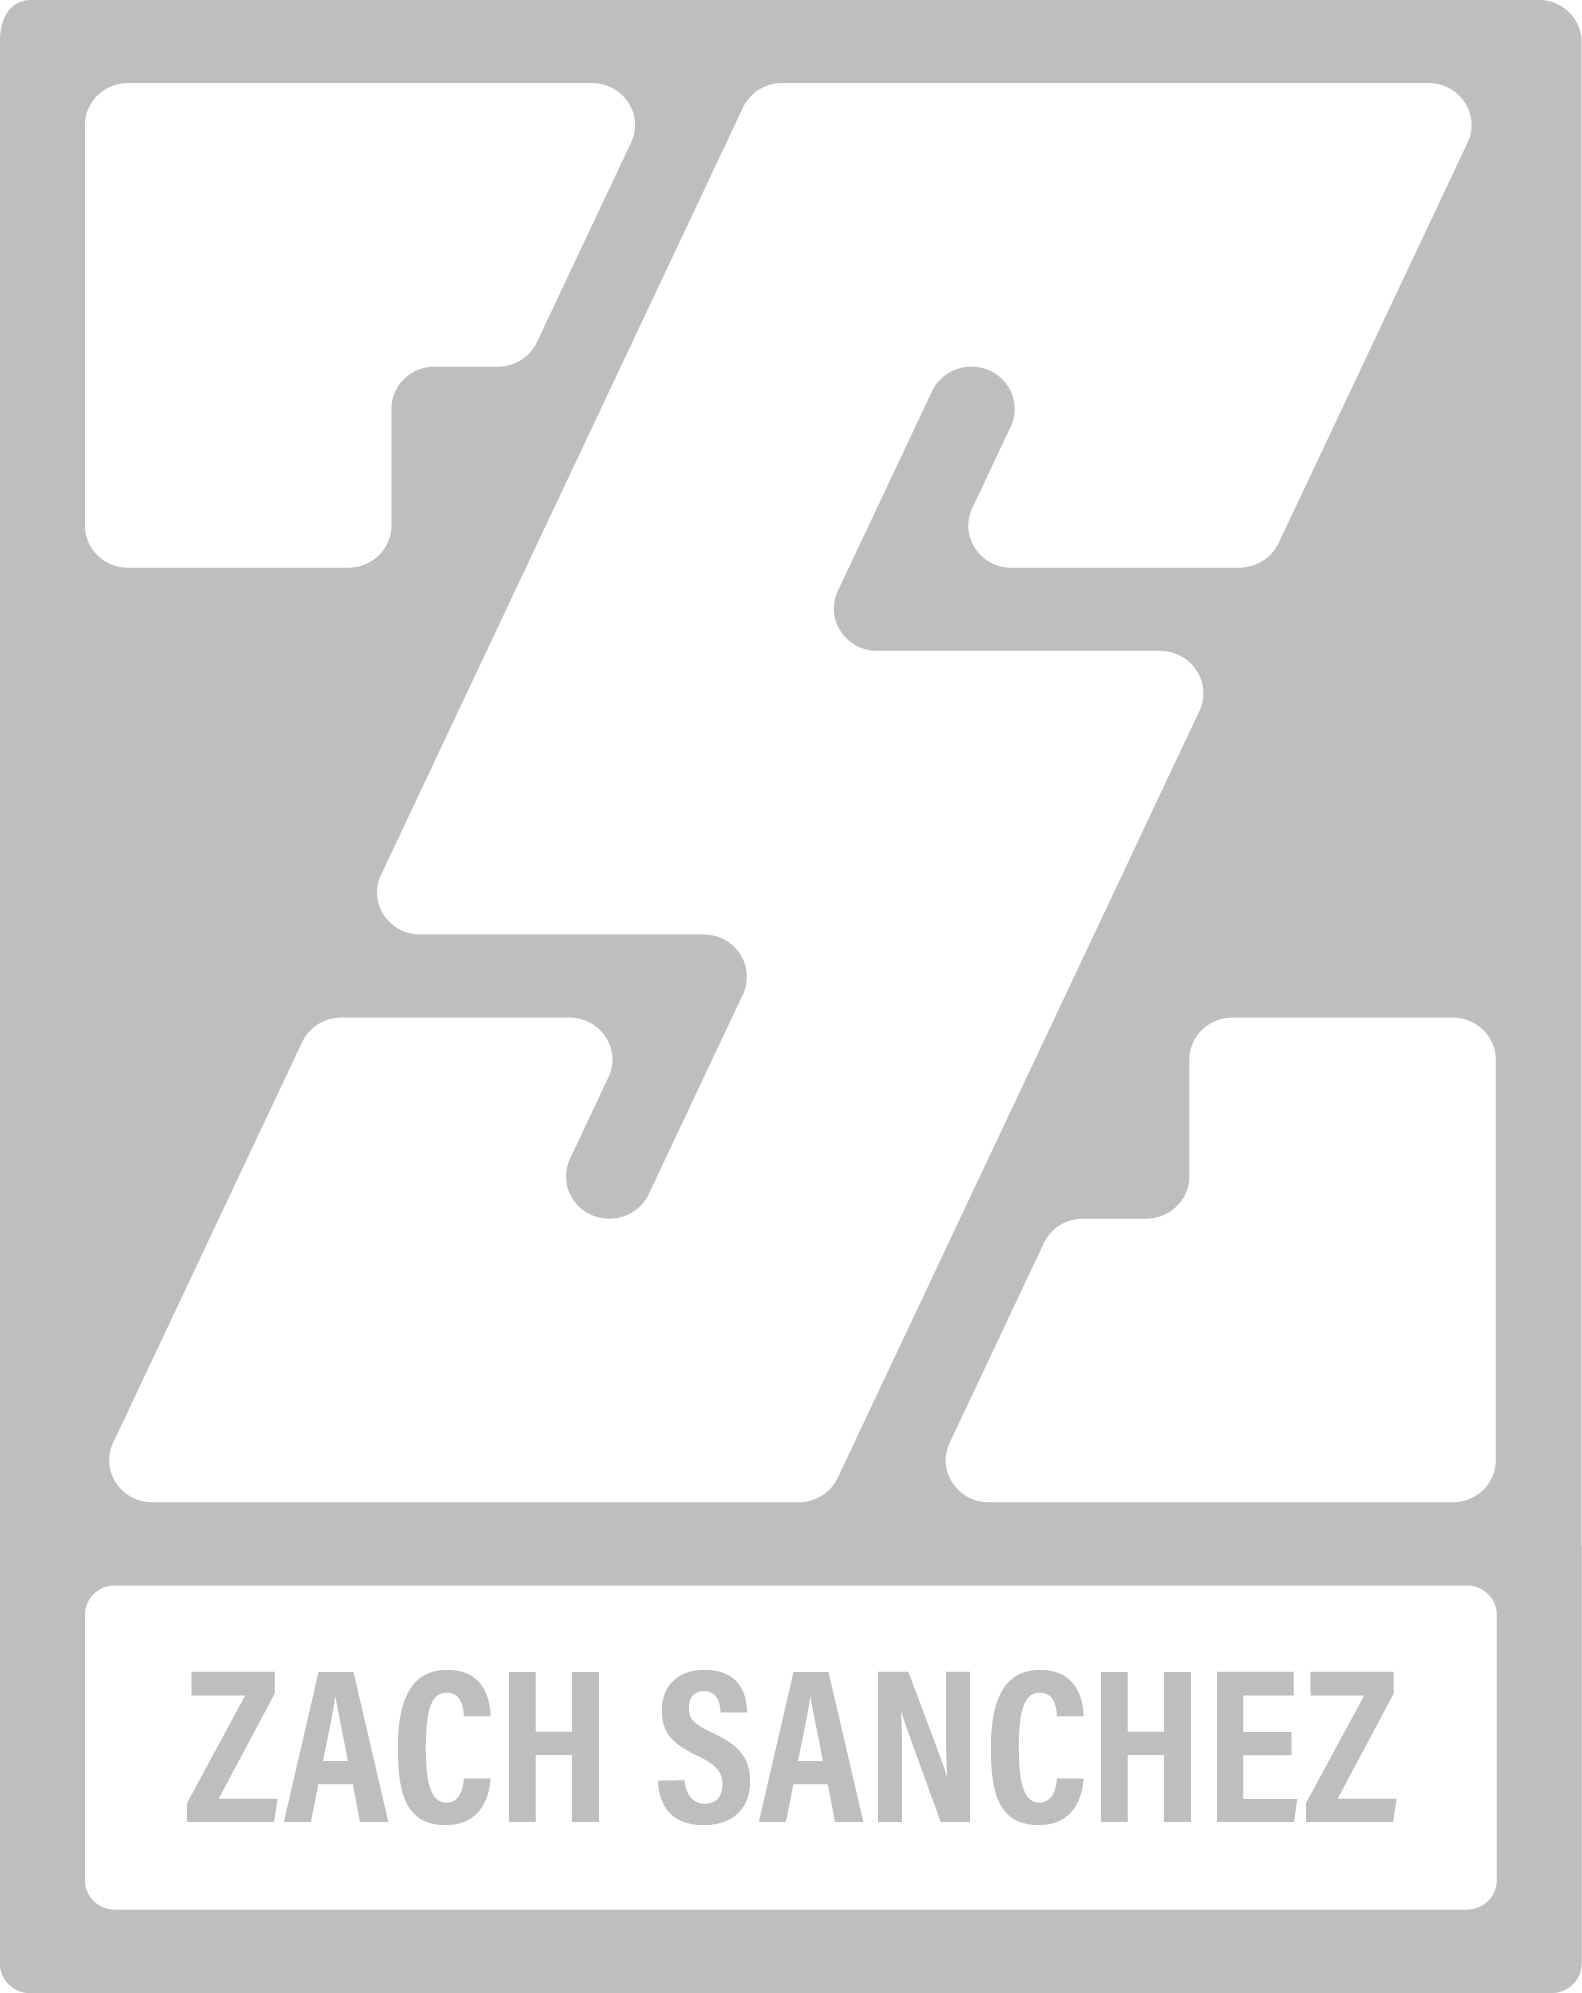 Zach Sanchez